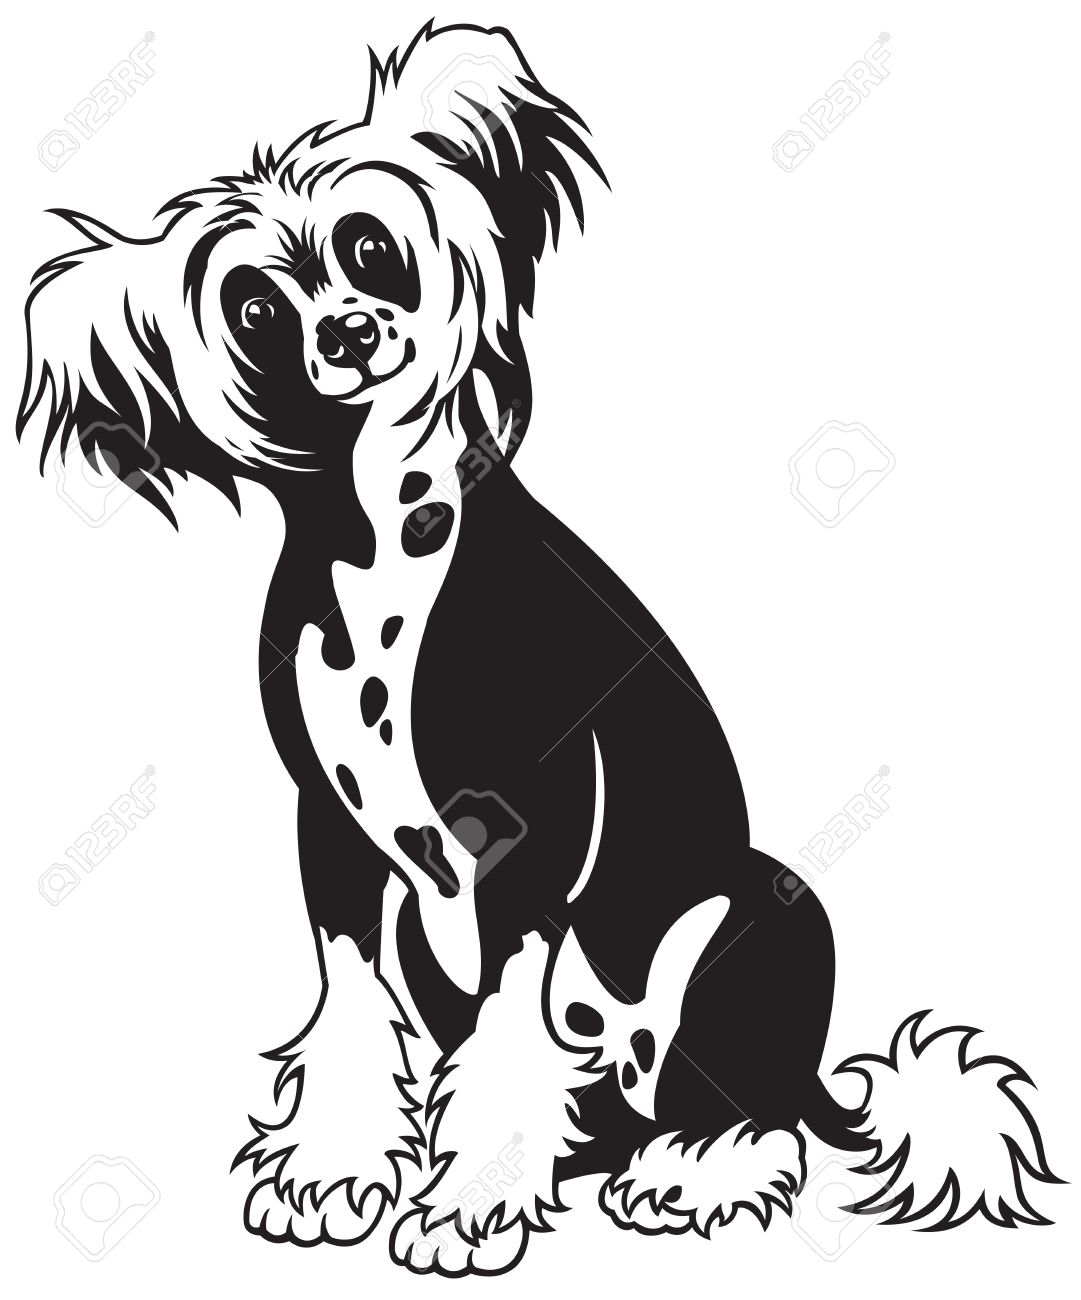 Chinese Crested Dog clipart #20, Download drawings